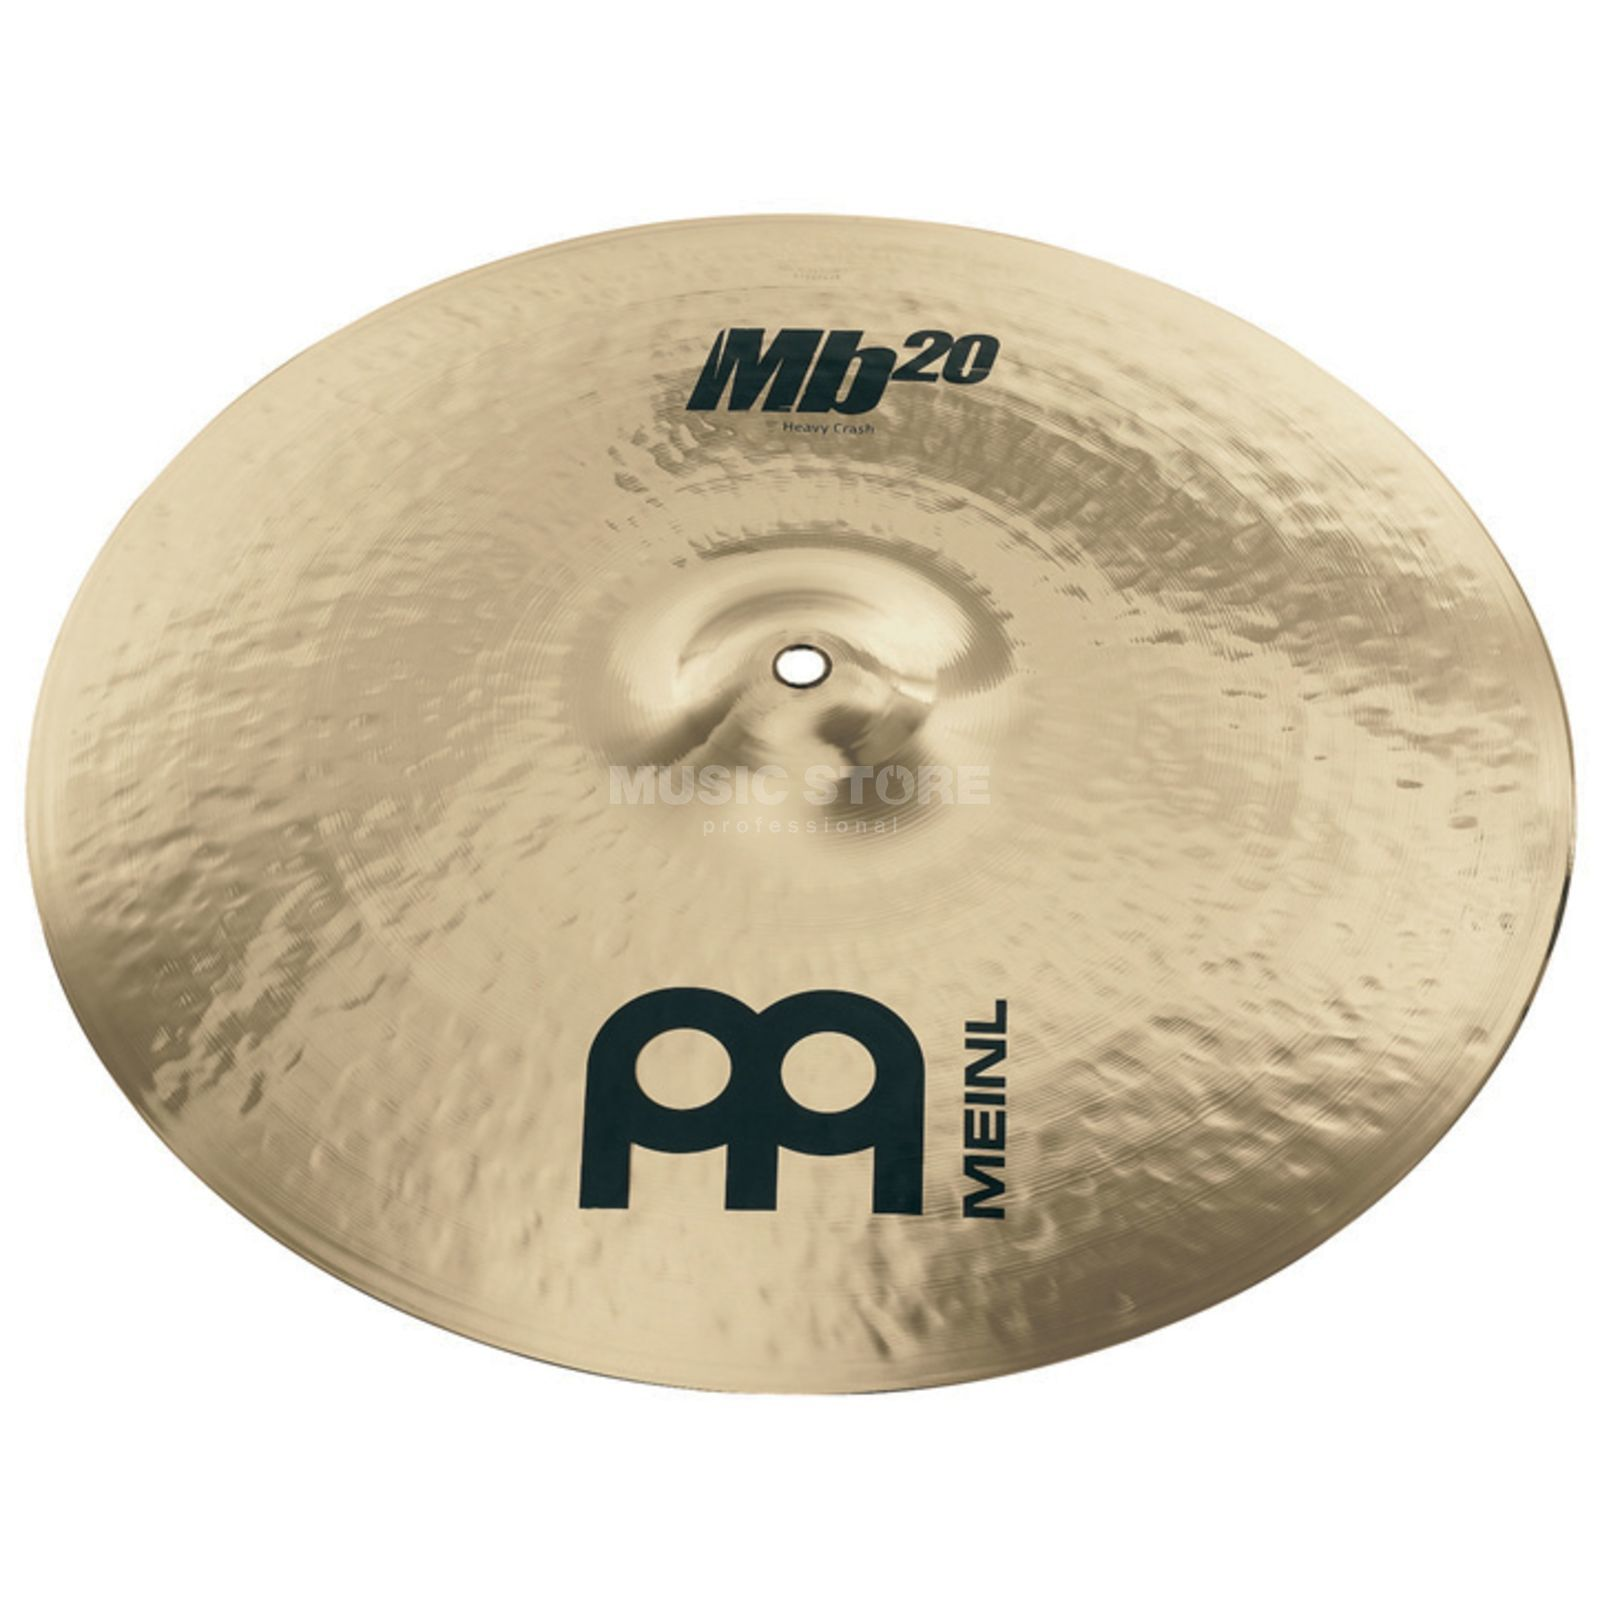 "Meinl MB20 Heavy Crash 16"" MB20-16HC-B, Brilliant Finish Zdjęcie produktu"